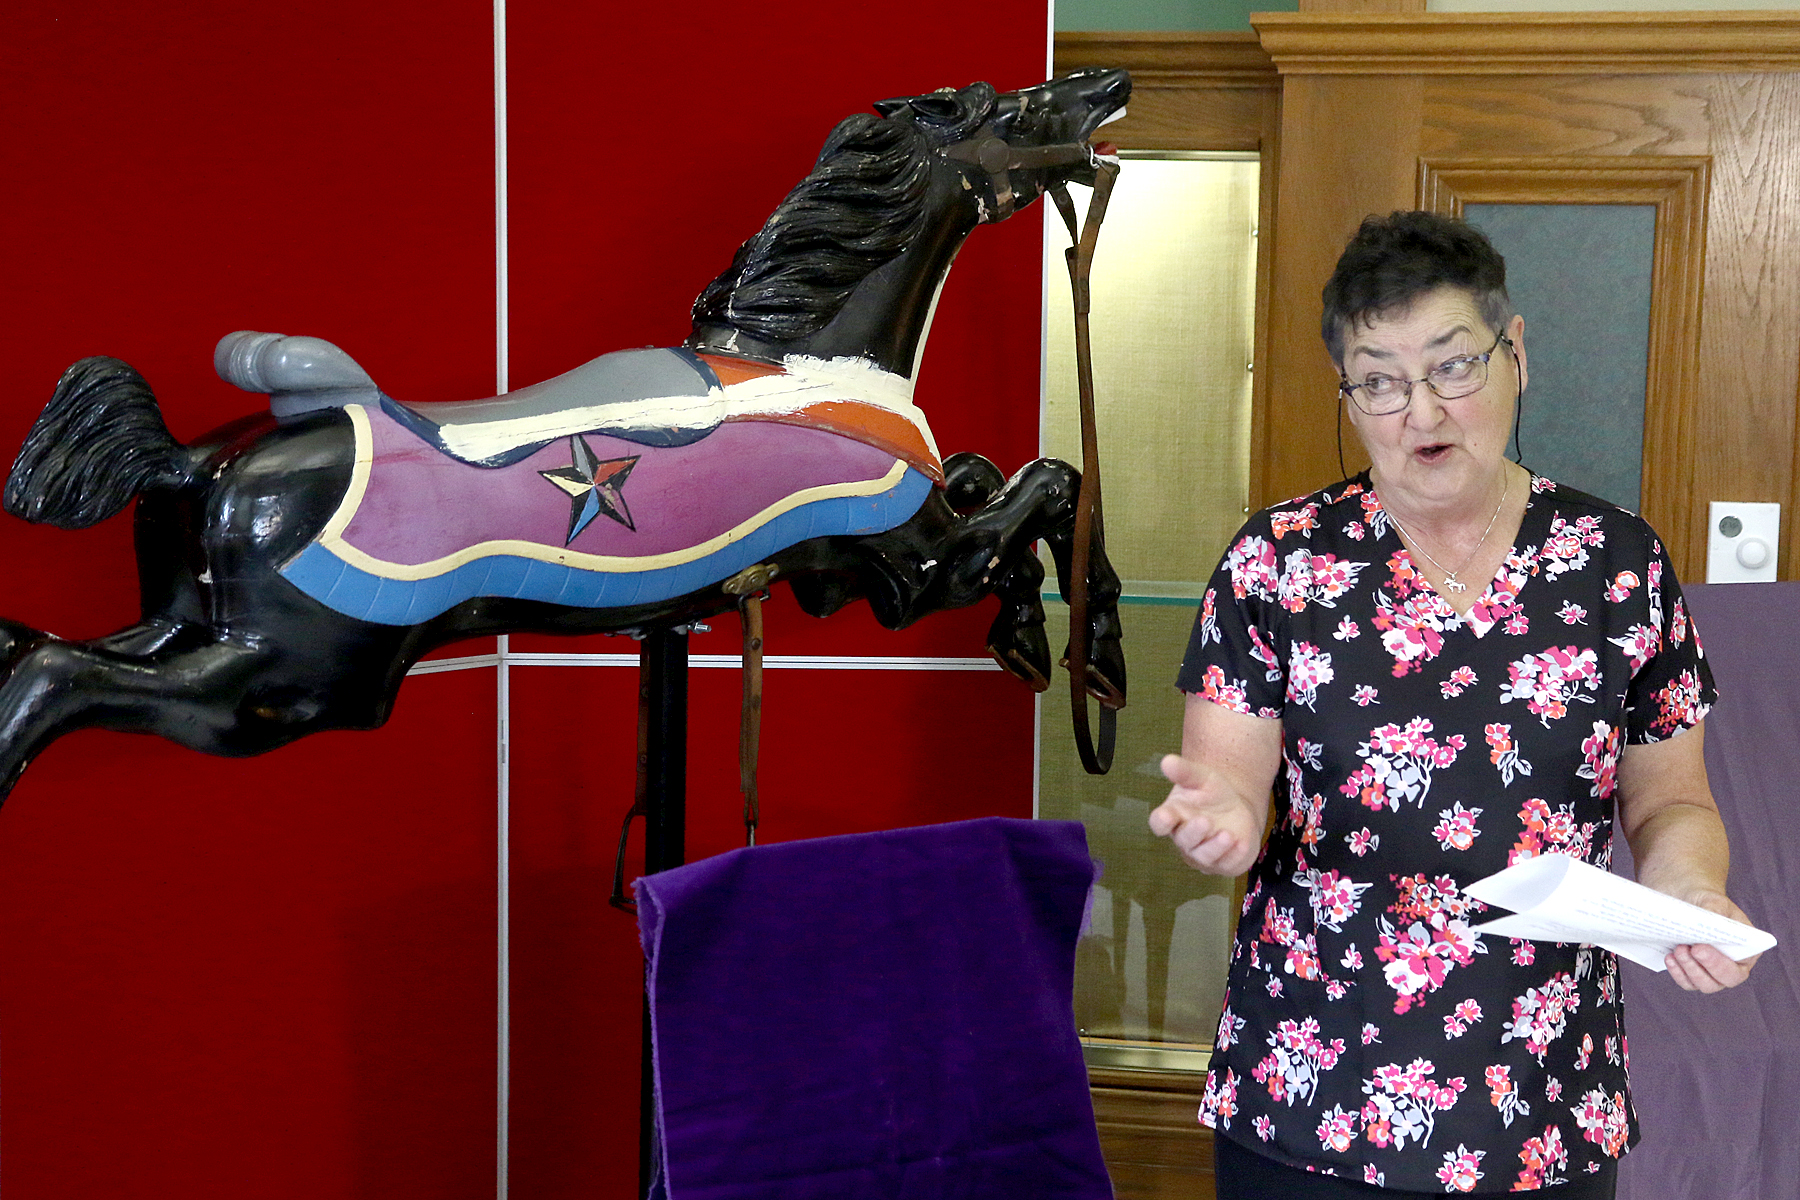 Nipigon woman earns right to name carousel horse - Tbnewswatch.com